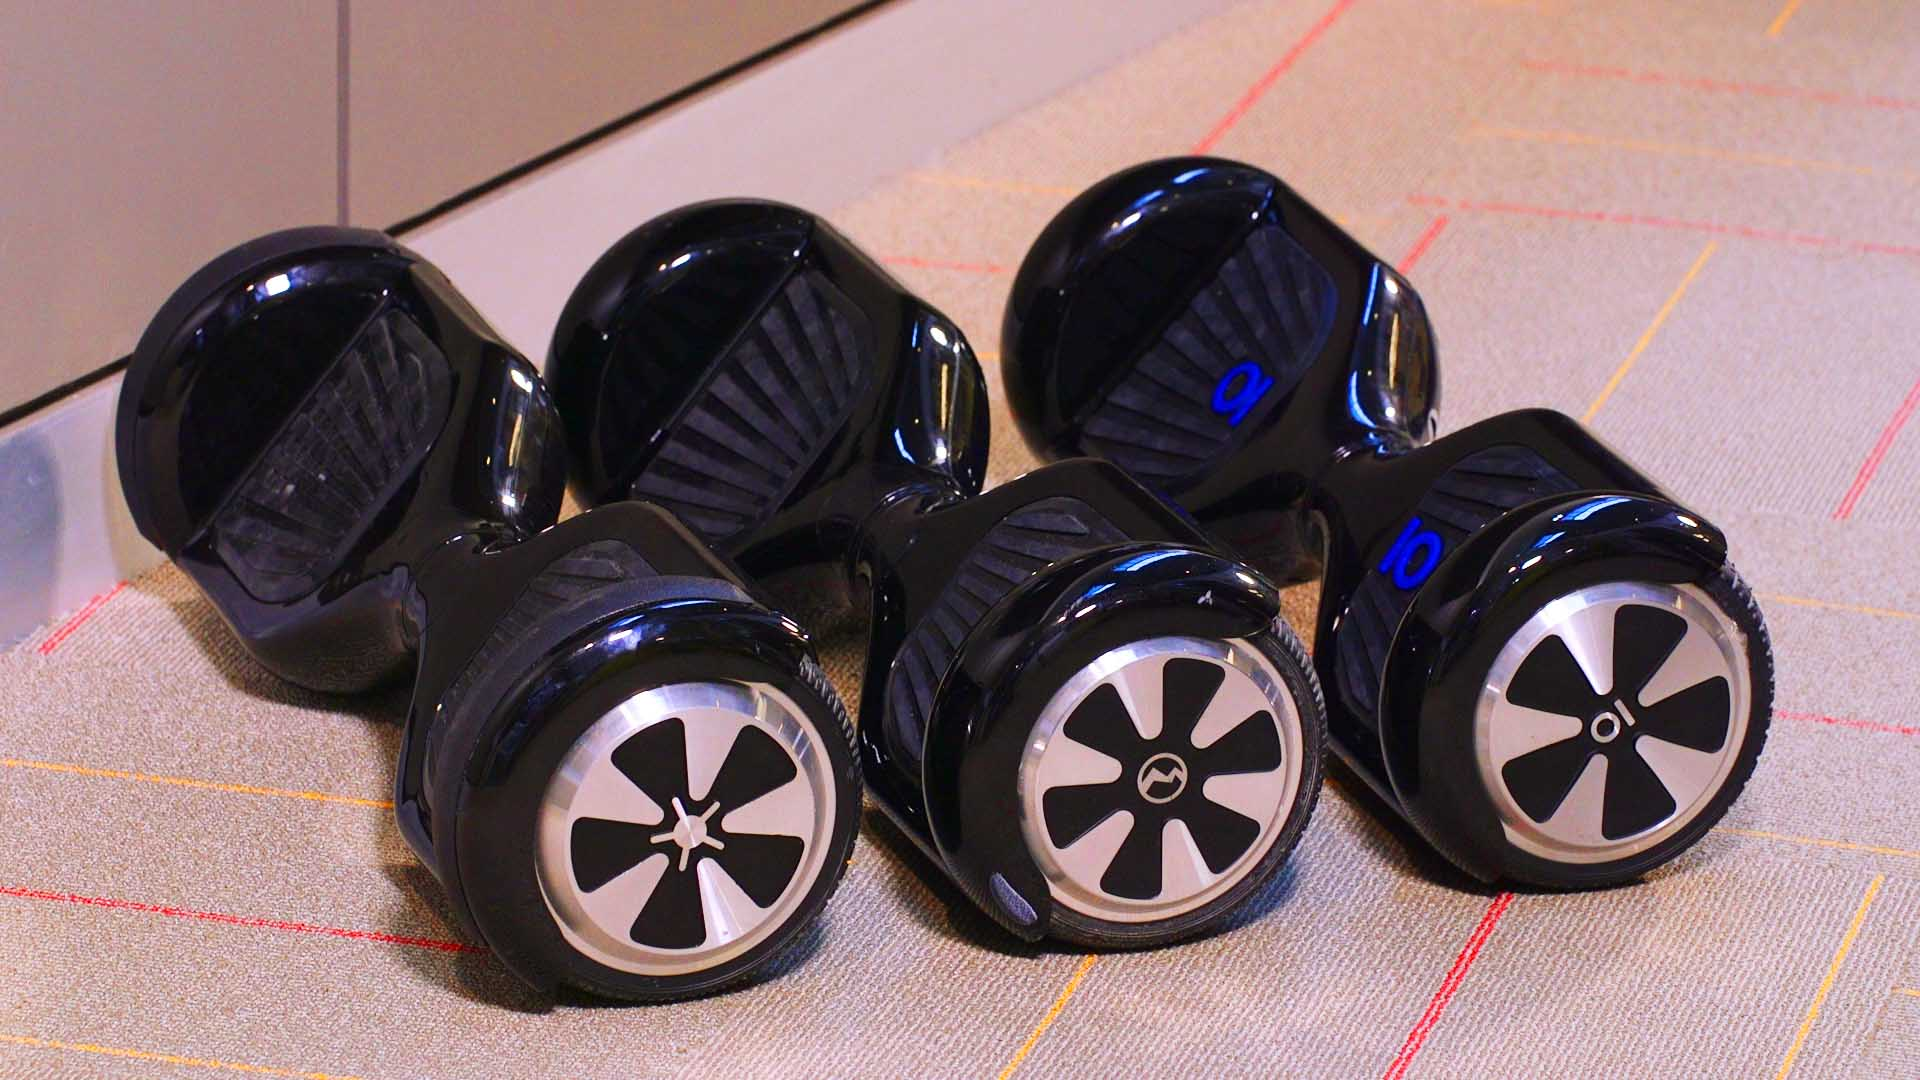 hoverboard safety consumer reports puts self balancing. Black Bedroom Furniture Sets. Home Design Ideas